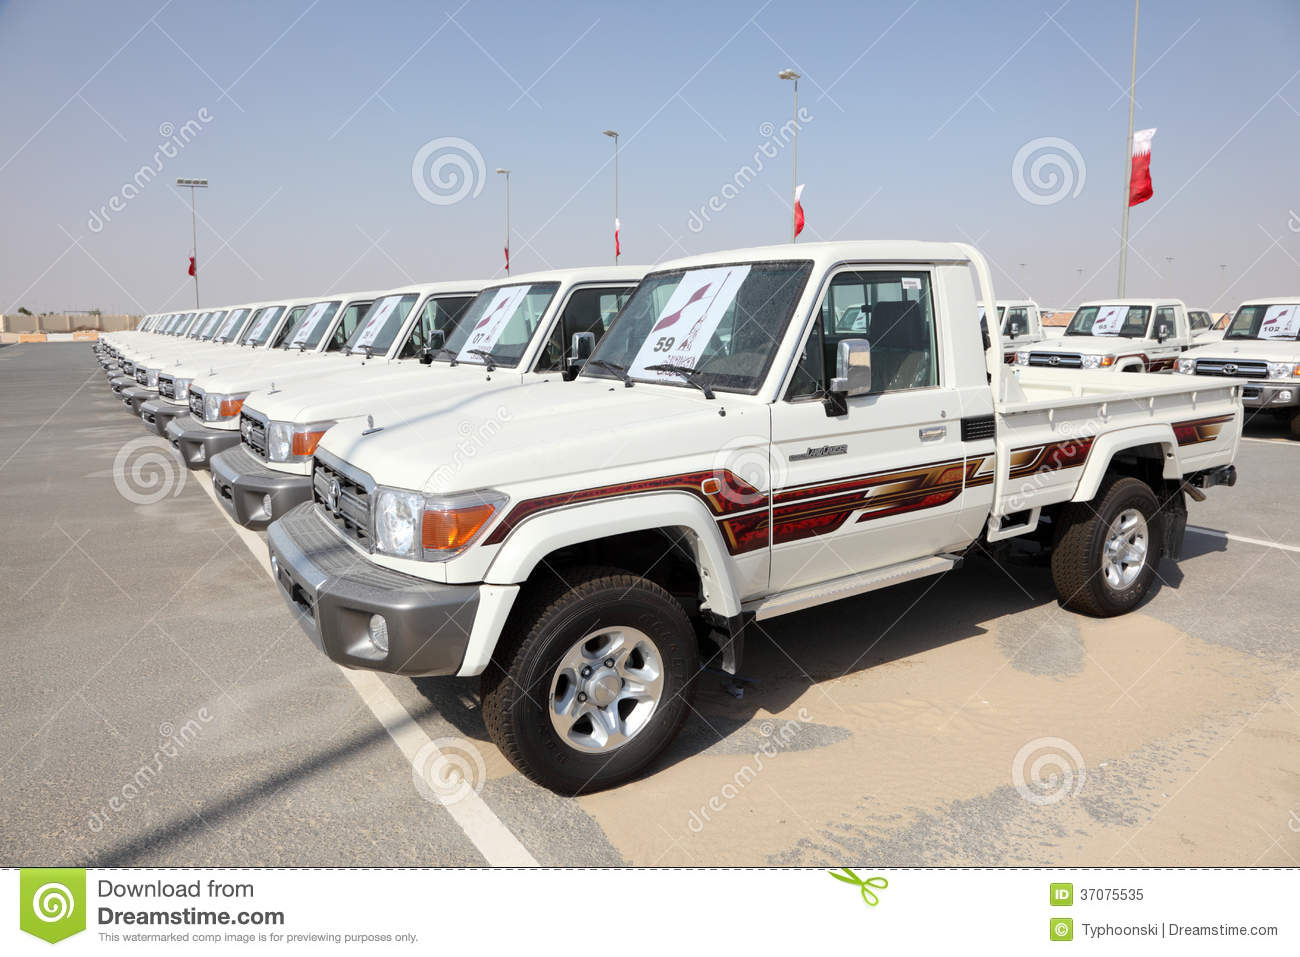 ... Cruiser Pickup Trucks as award for Camel Race winners n Doha, Qatar